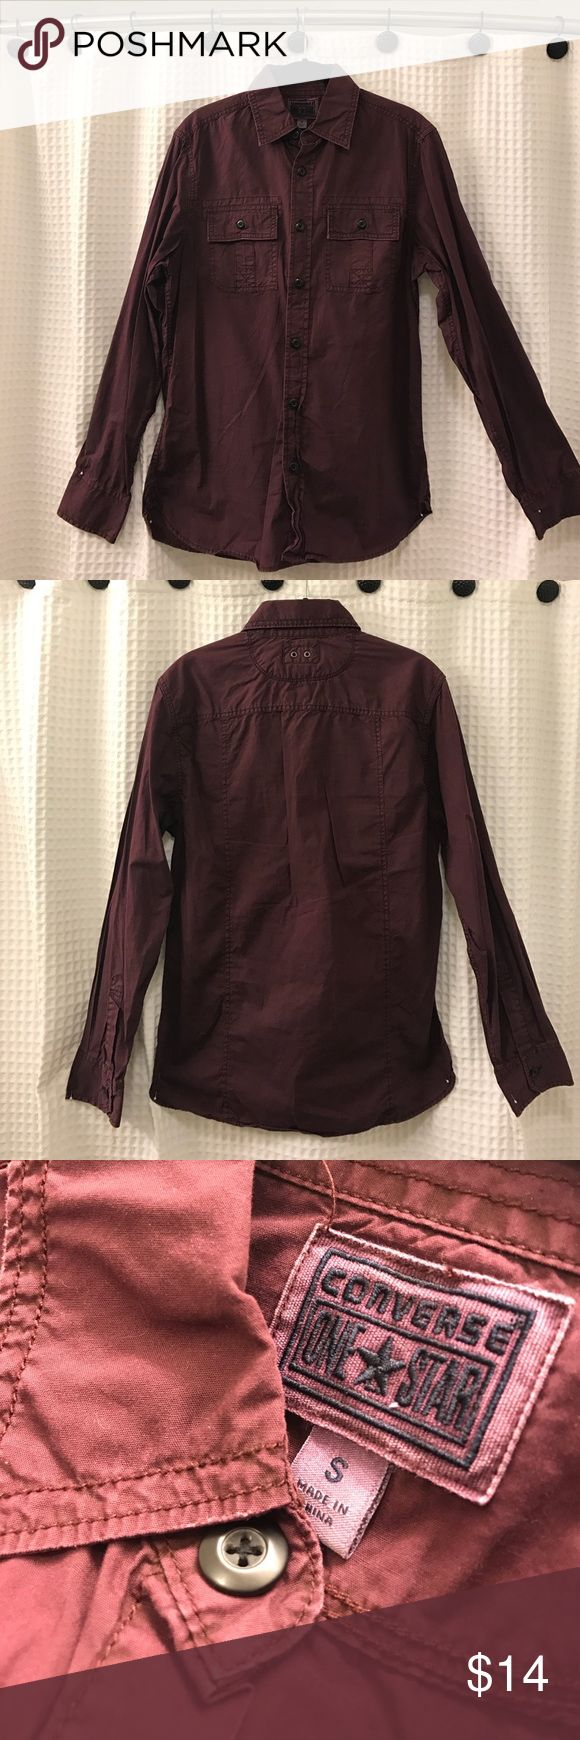 Converse One Star Men's Burgundy Collared Shirt -S Converse One Star Men's Dark Burgundy Collared Shirt - Size Small Converse Shirts Dress Shirts